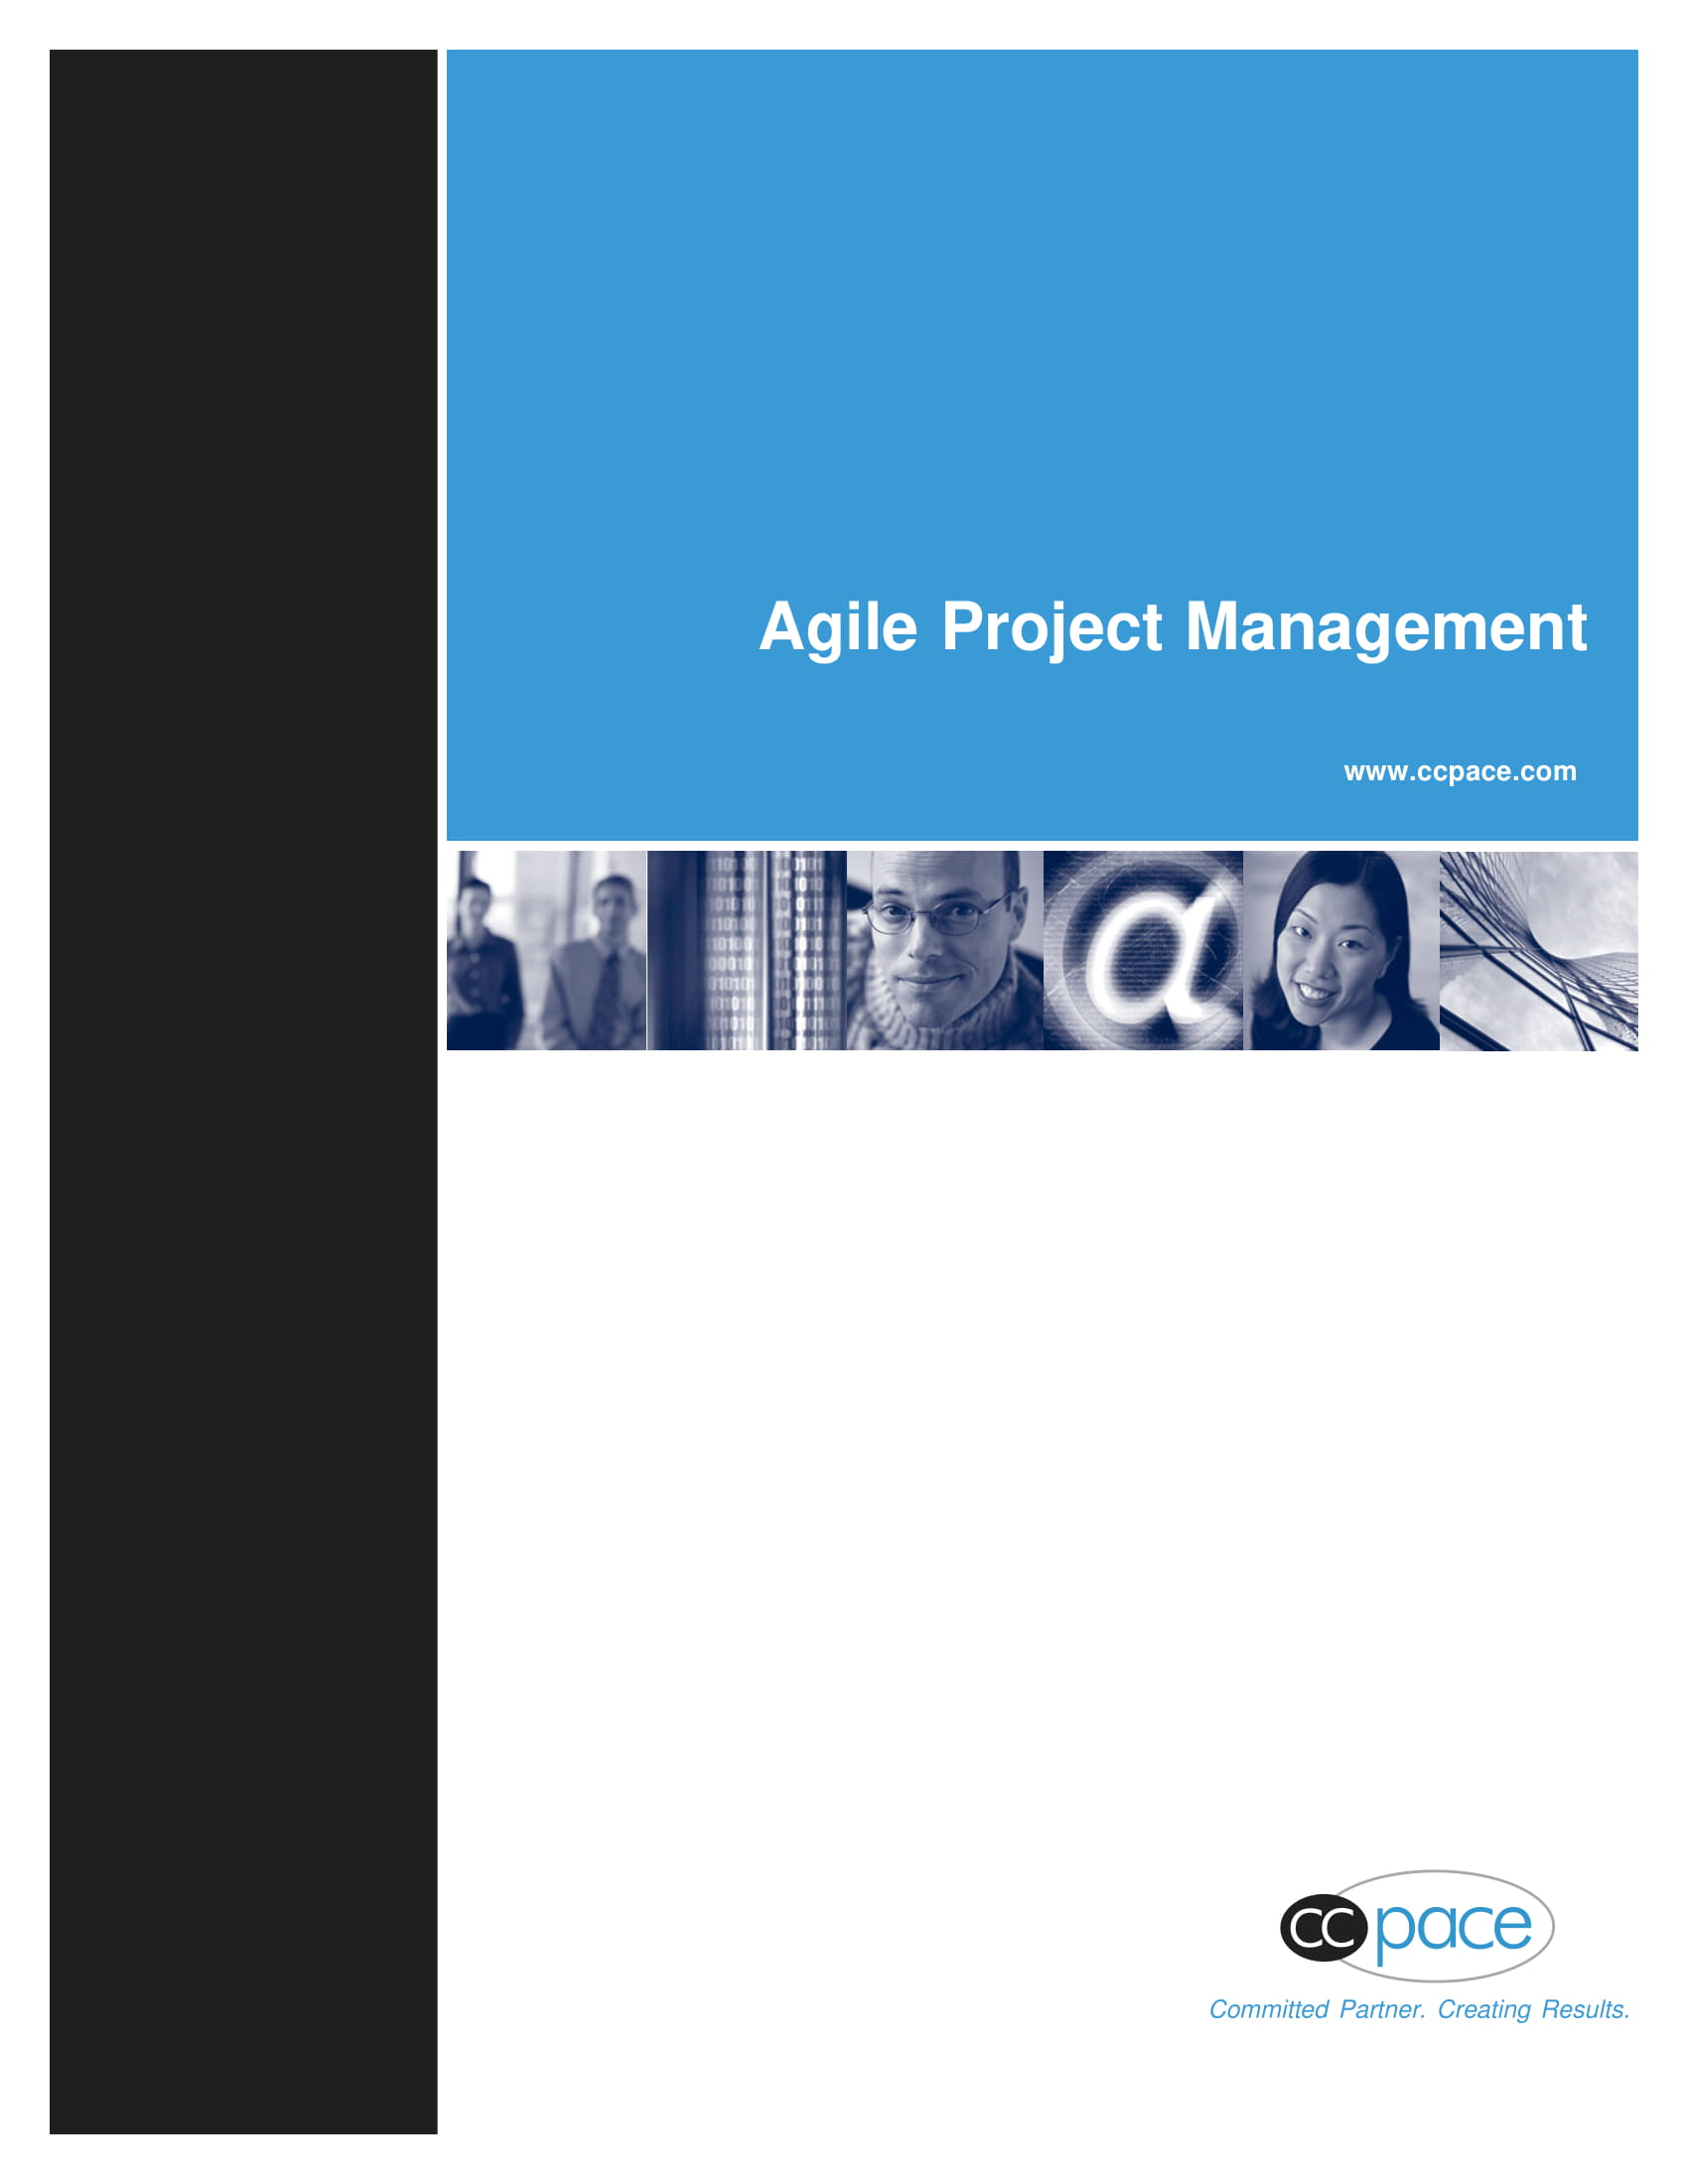 standard agile project management plan example 01